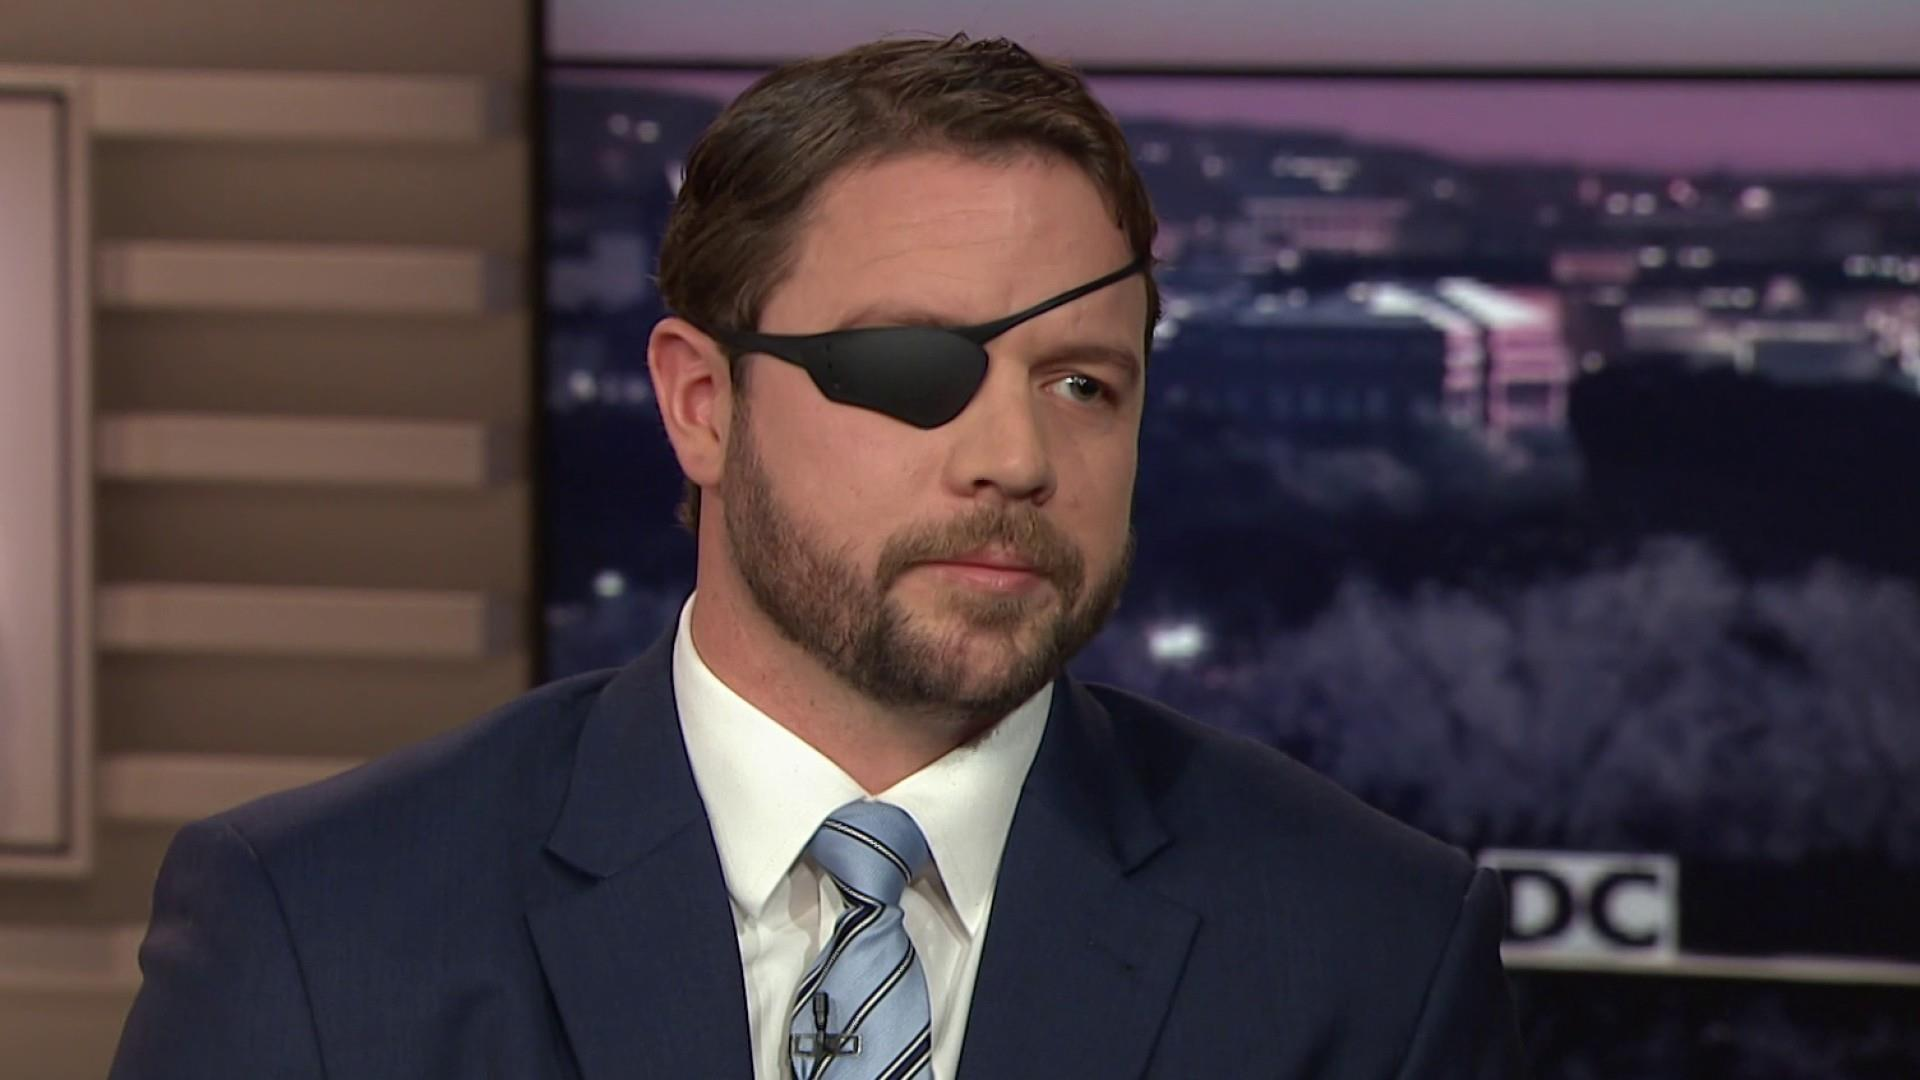 Rep. Crenshaw: 'When we talk about all the intel out there, I was the guy collecting that intel'